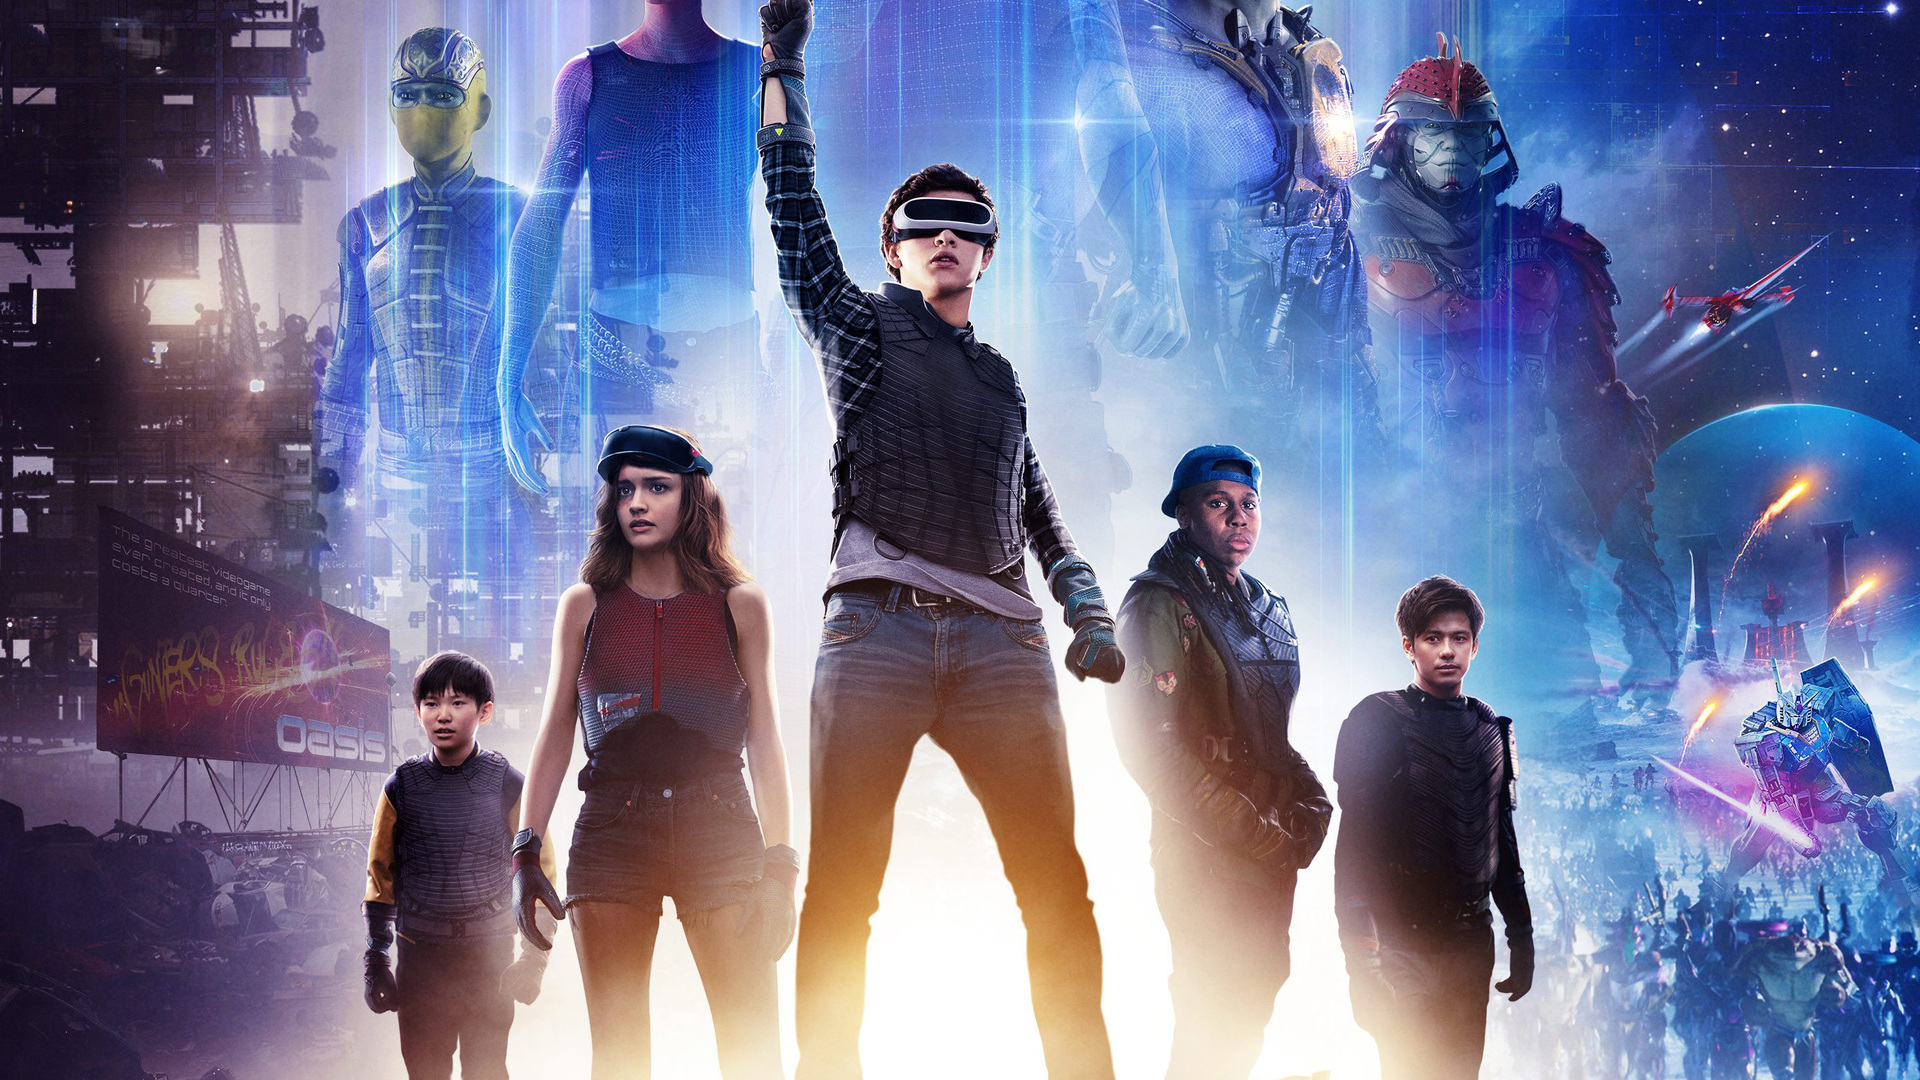 1920x1080 ready player one 2018 movie poster laptop full hd 1080p hd ready player one 2018 movie poster gcg voltagebd Image collections